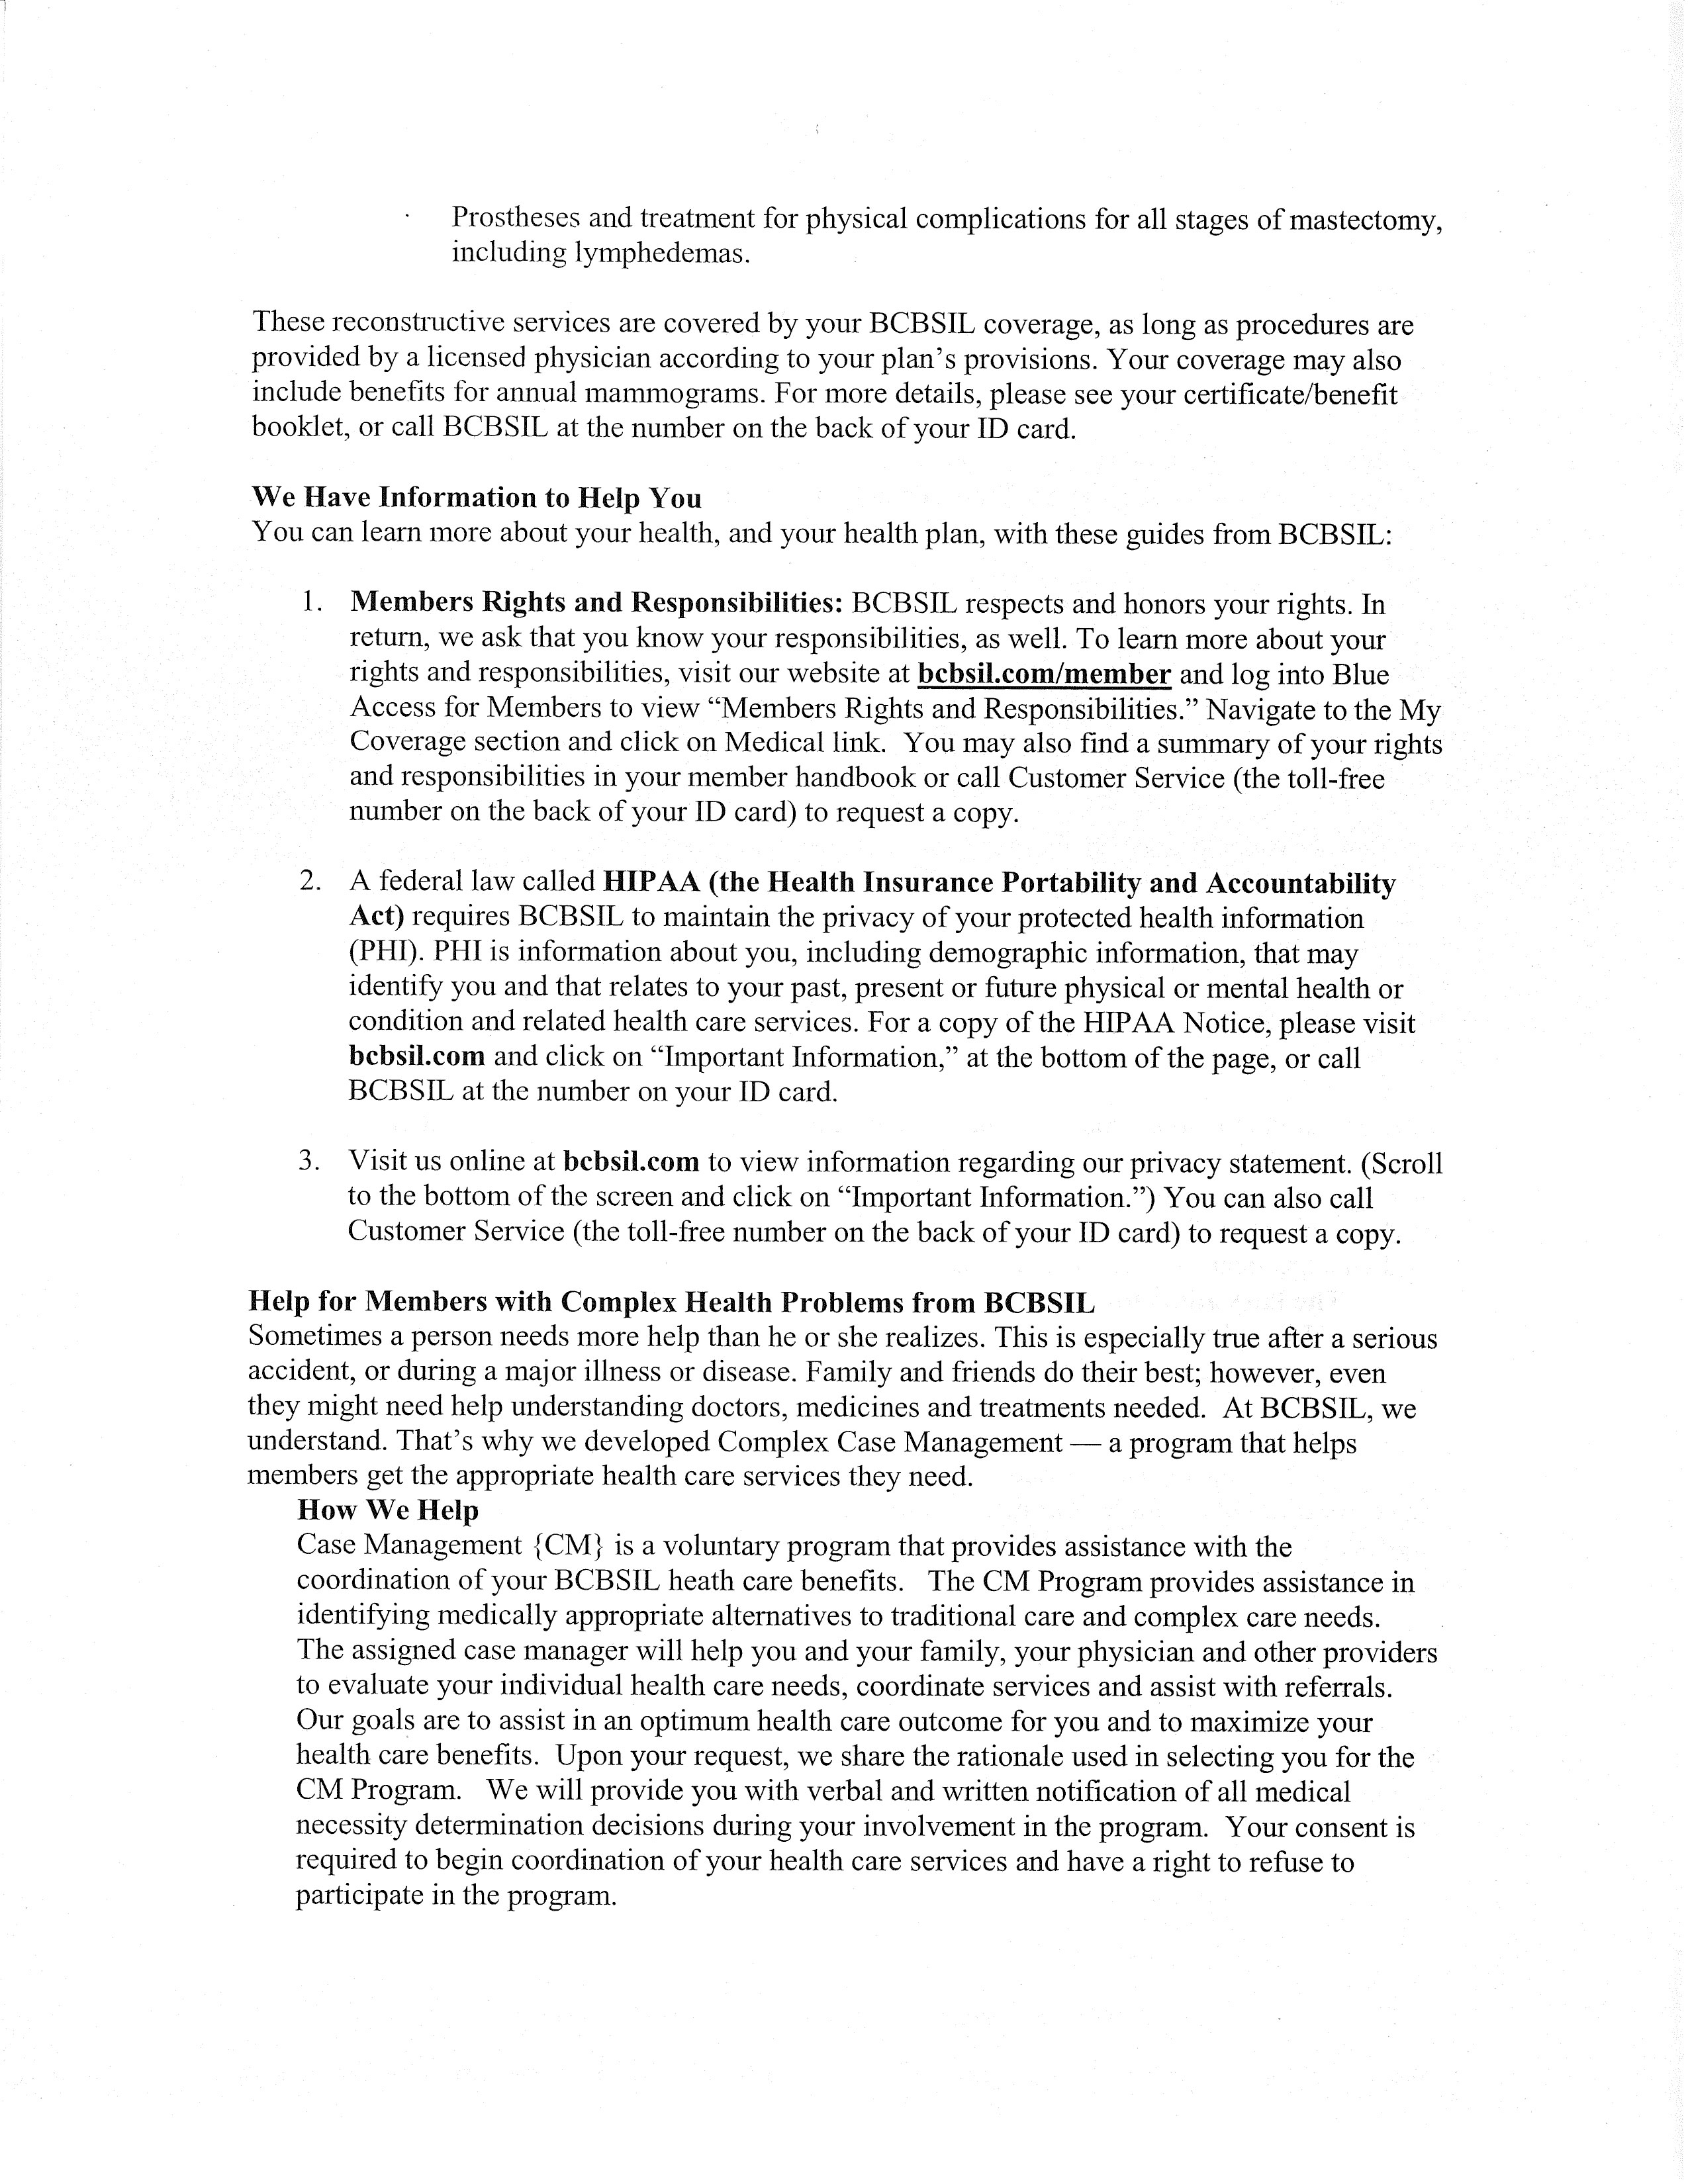 Teamsters local 731 health welfare and pension fund printer friendly bcbs compliance notice november 2014 1betcityfo Images